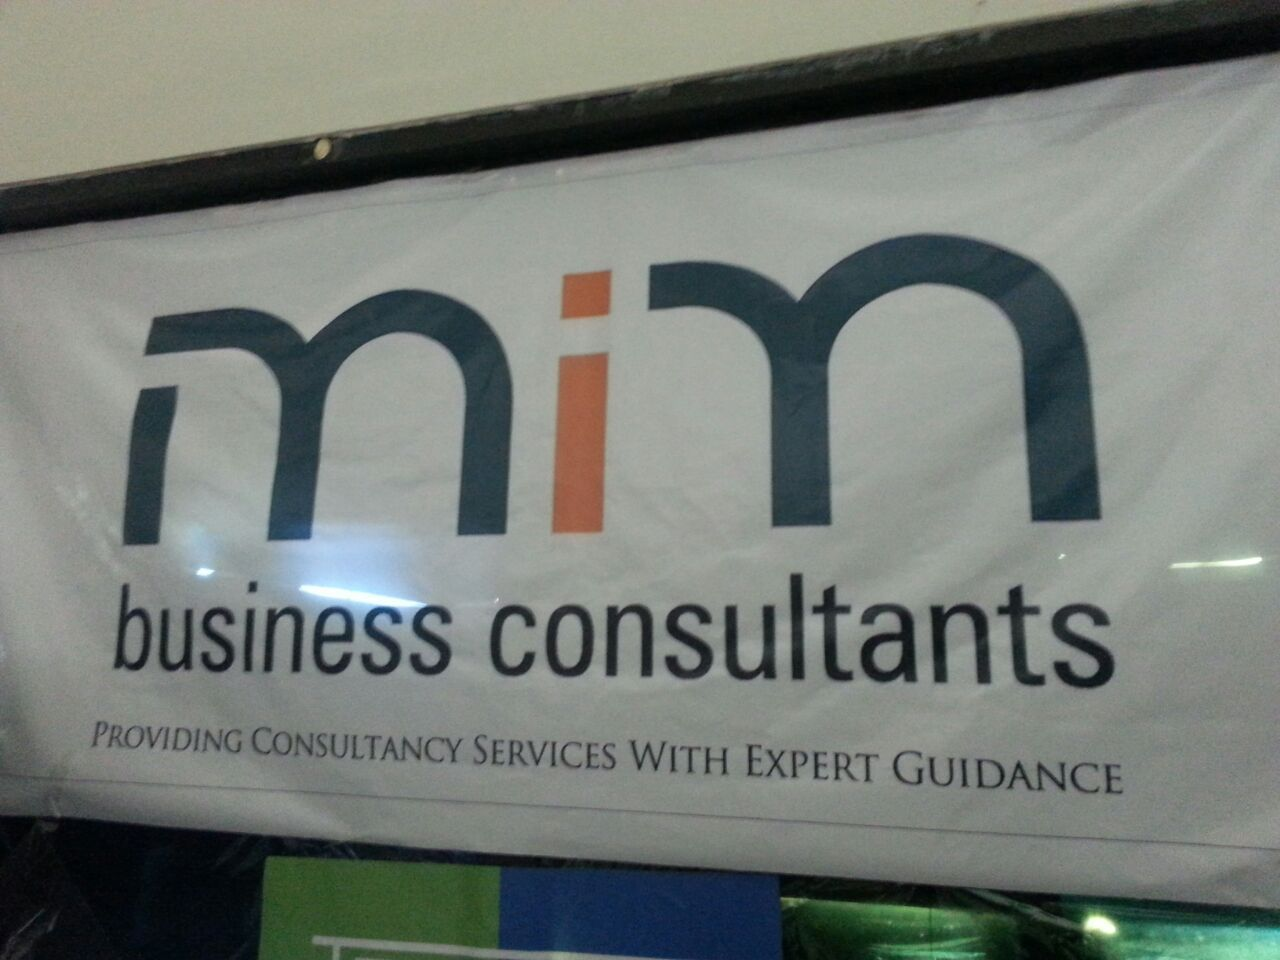 MIMBC banner at an event addressing entrepreneurs & business leaders